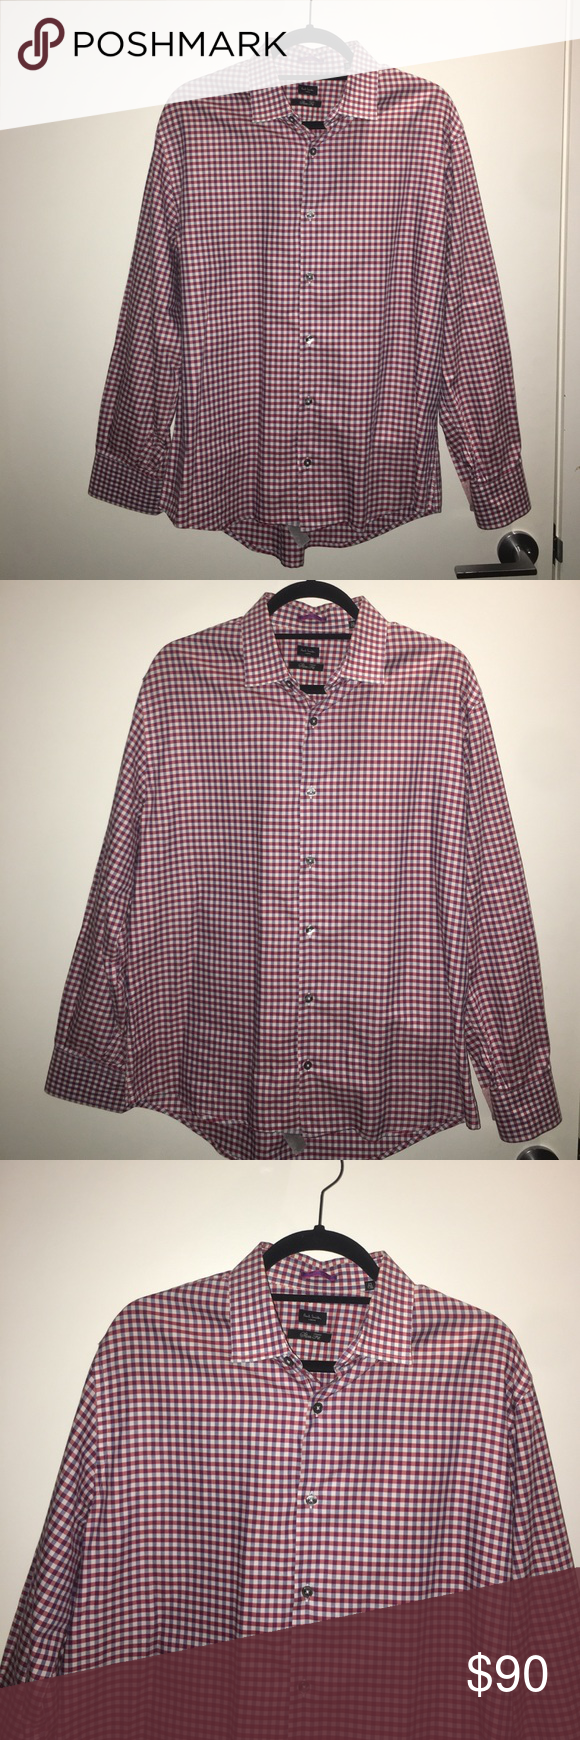 "Paul Smith London Slim Fit Checkered Dress Shirt Paul Smith London slim fit checkered dress shirt. The colors are navy blue, maroon and off white. The size says 16.5/42 but the shirt was hemmed and the sleeves are 28"". Worn once. In EXCELLENT, like new condition. Made in Italy. Paul Smith Shirts Dress Shirts"